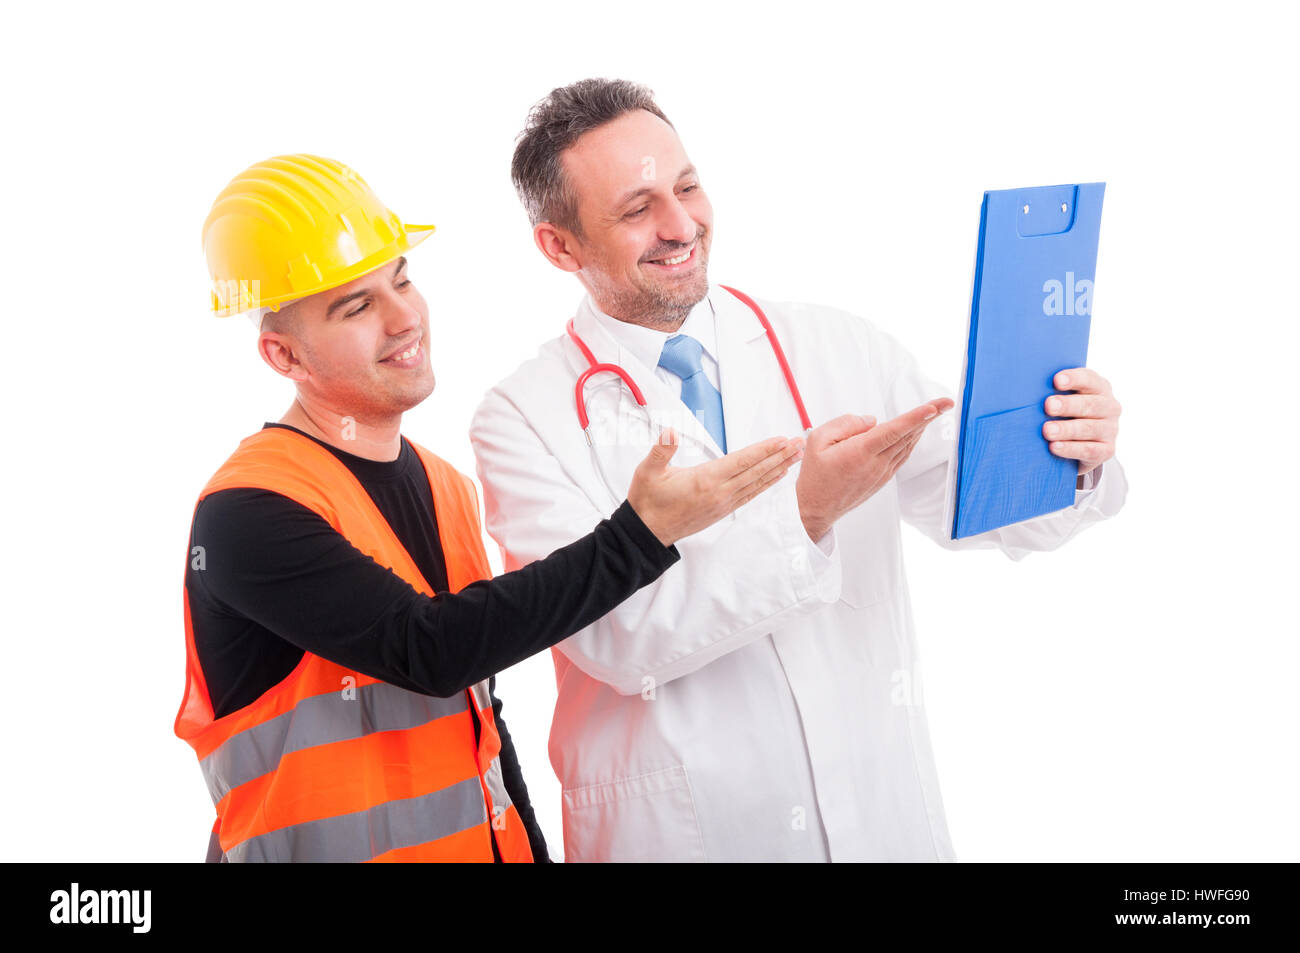 Doctor and constructor showing something on clipboard and smiling isolated on white background - Stock Image